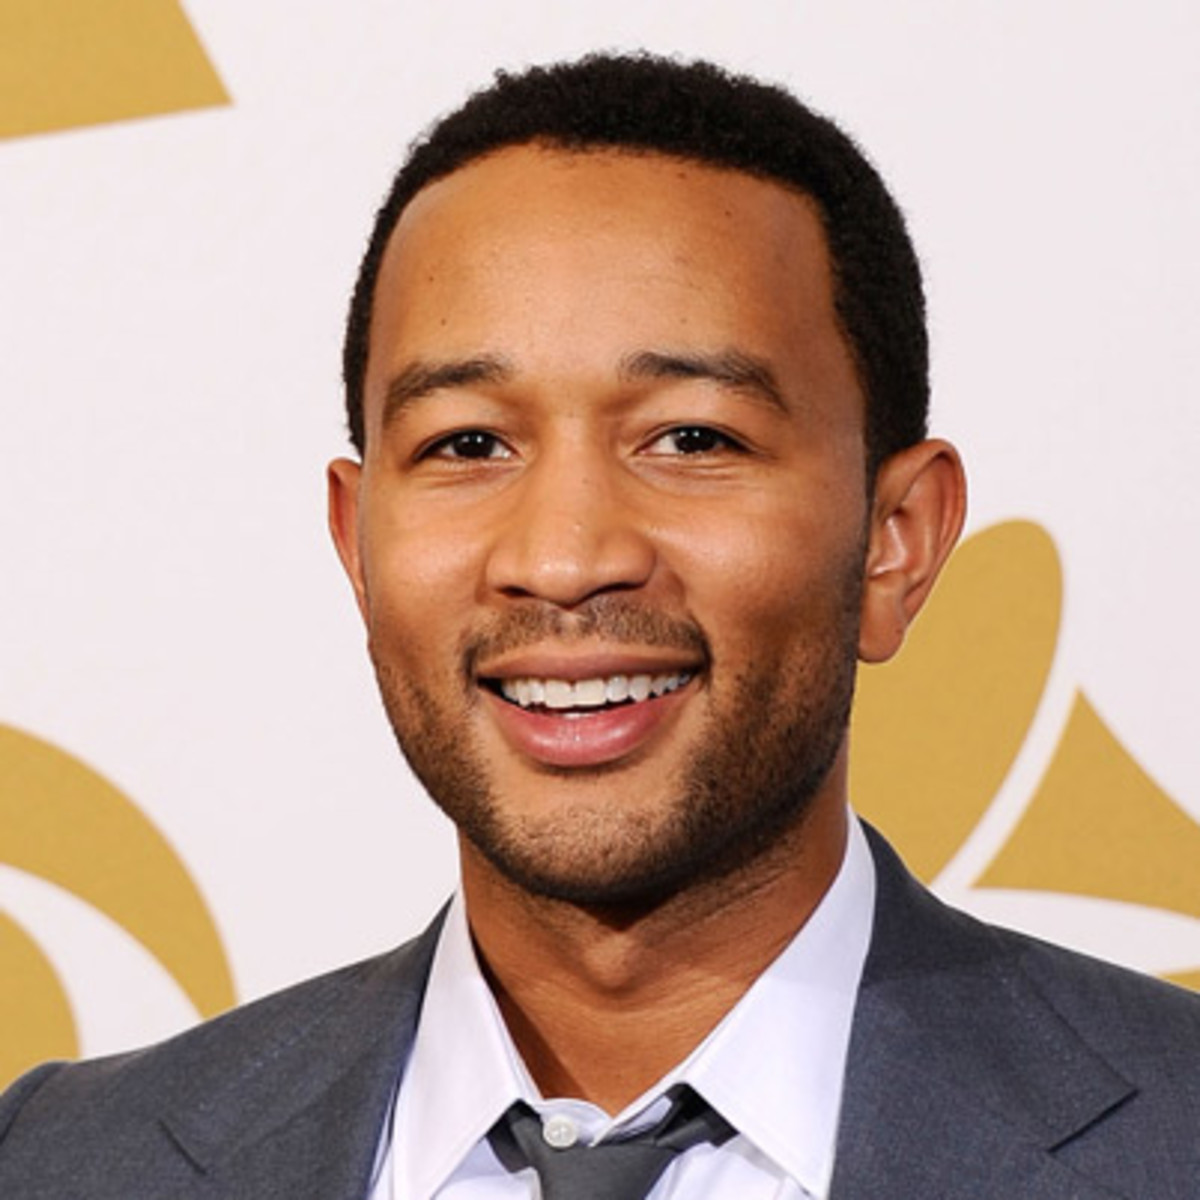 John Legend Crowned World's Sexiest Man Alive